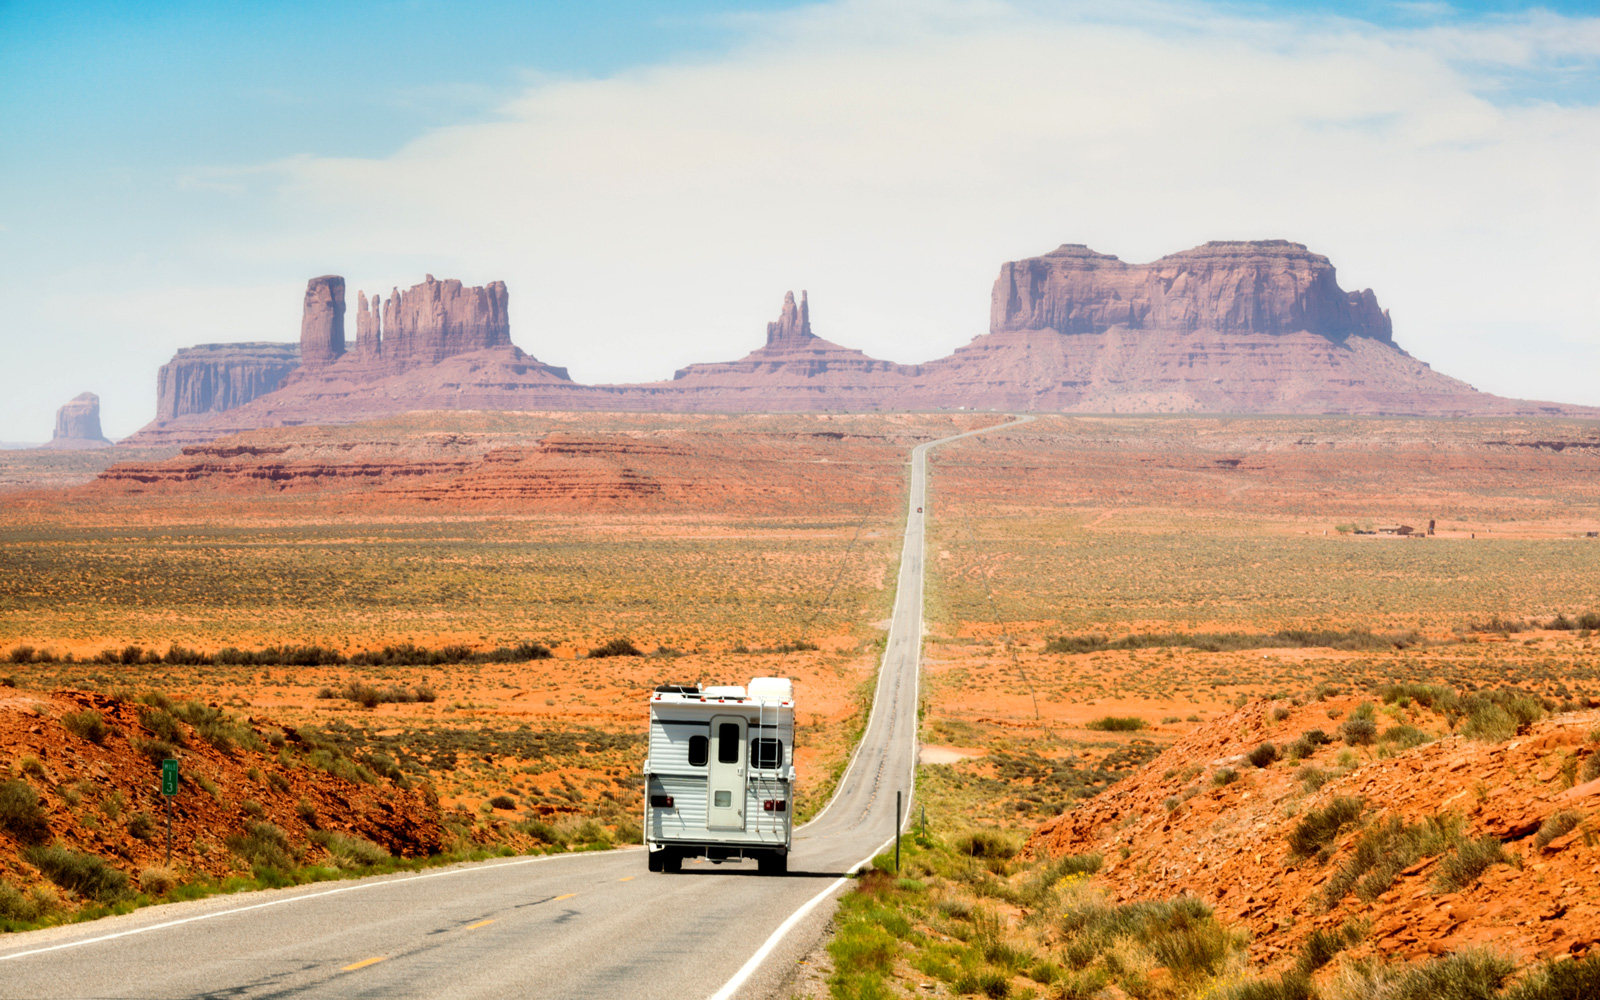 These Are the Best Road Trips to Take in the U.S., According to a New Study